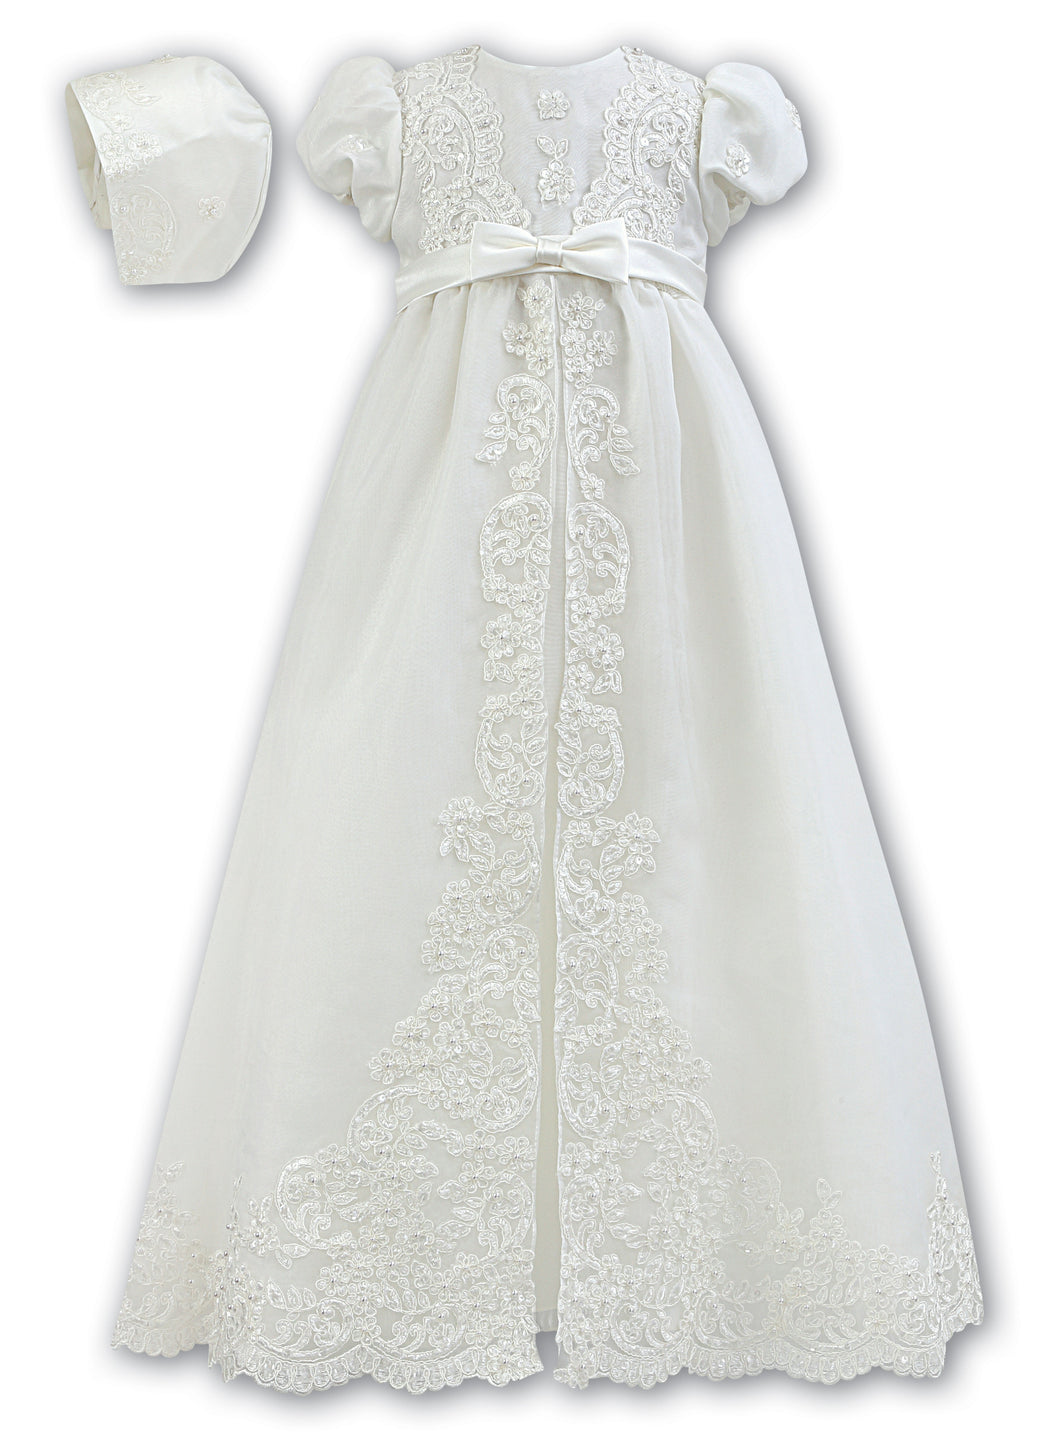 Baby Girls christening gown, baptism baby girls robe, Naming ceremony gown